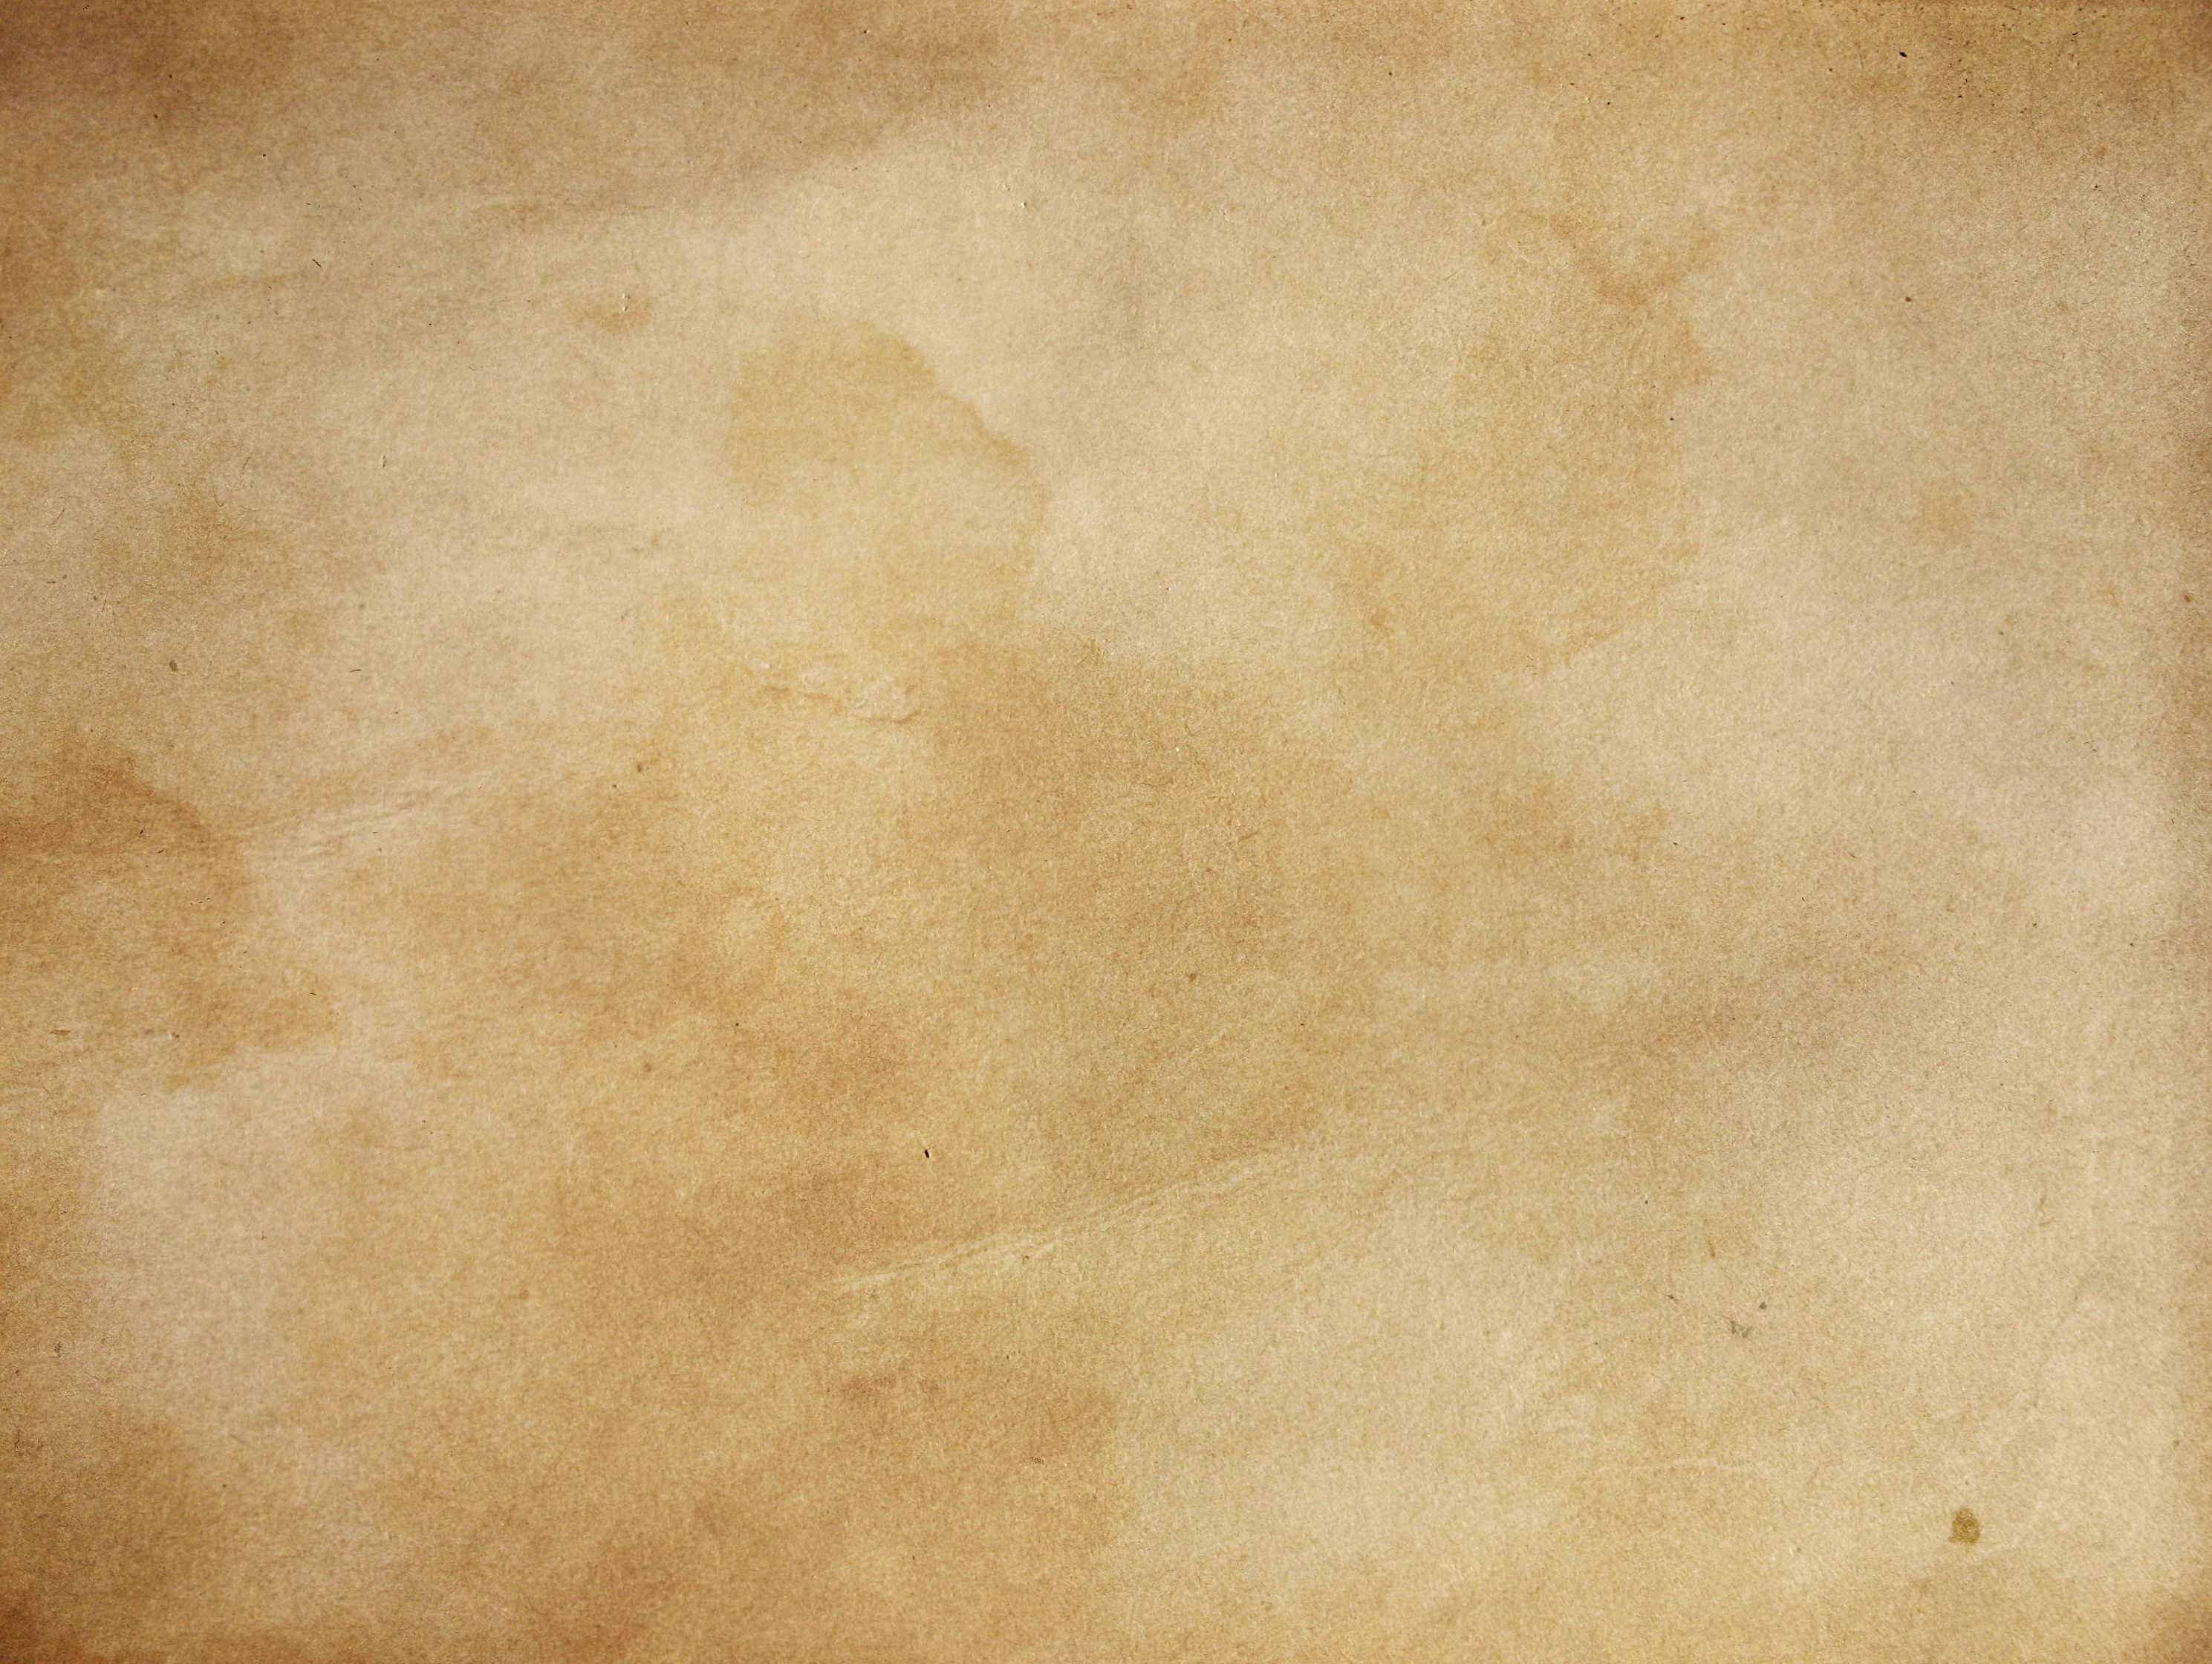 Free High Res Texture 394 Stained Paper Texture Grunge Paper Textures Paper Texture